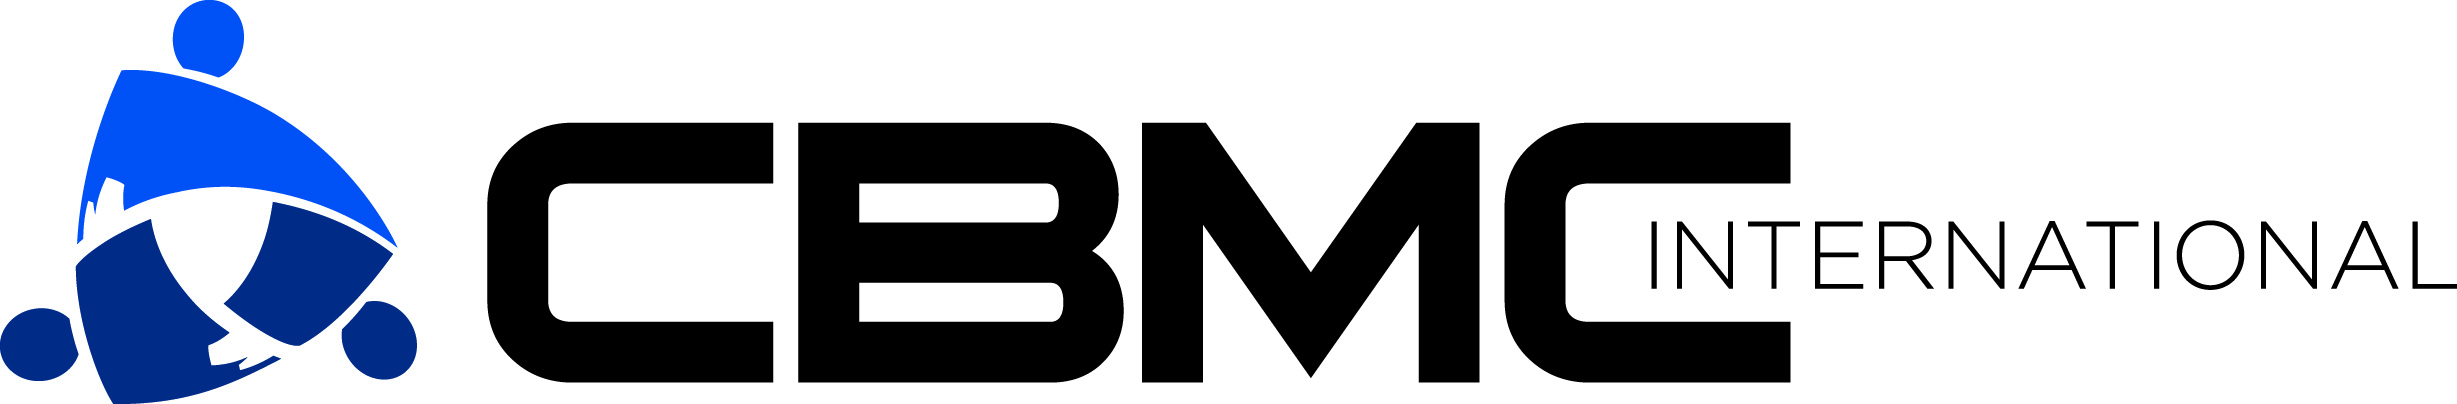 logo for CBMC International